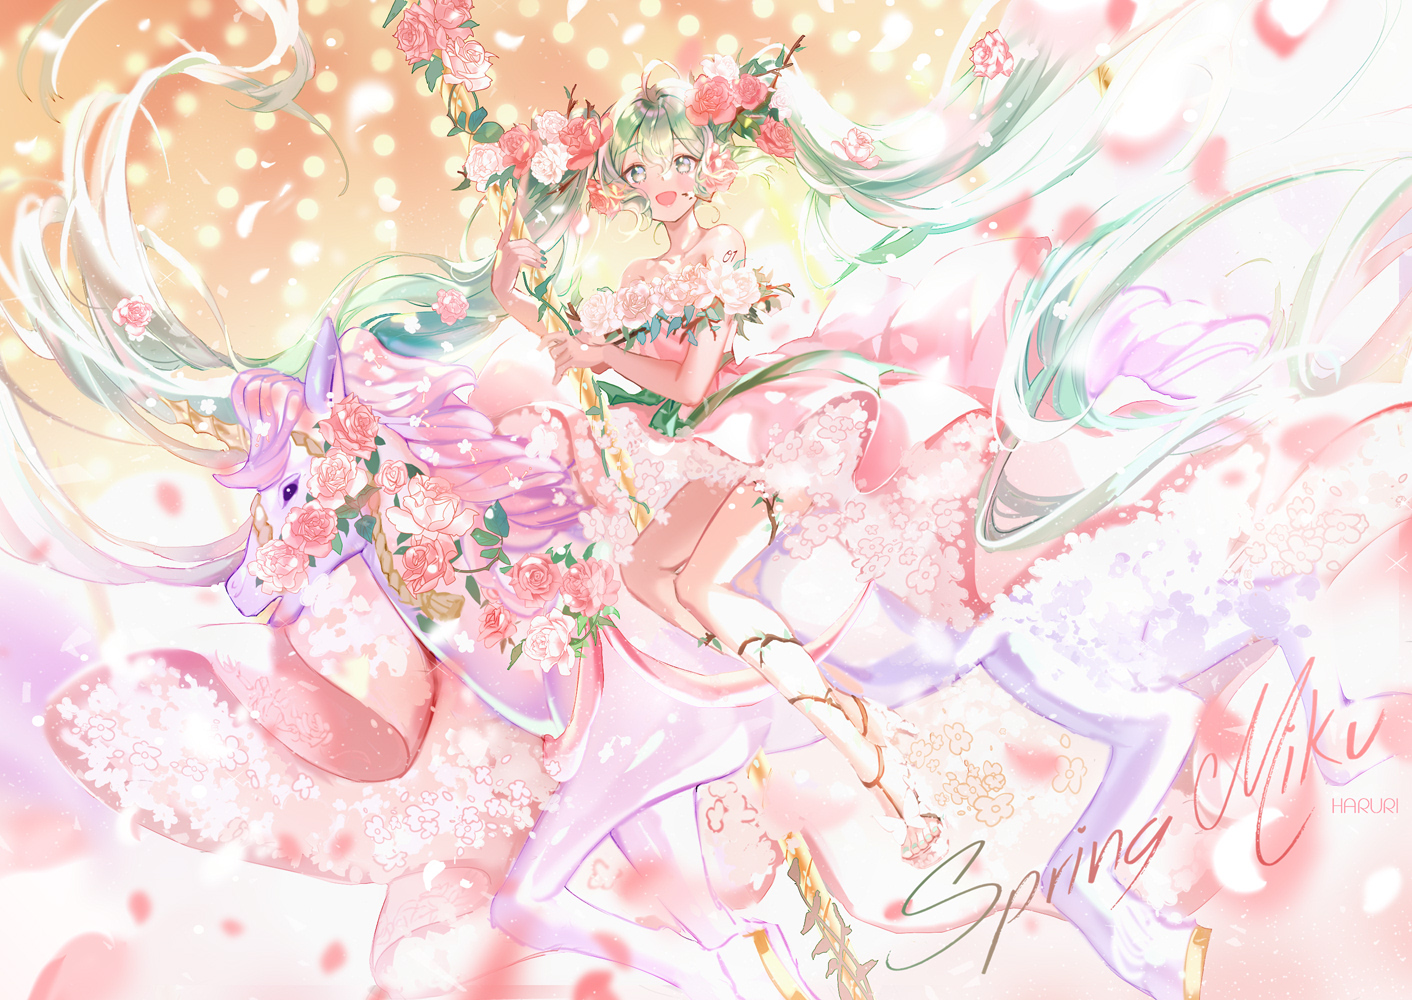 animal dress flowers green_eyes green_hair hatsune_miku horse long_hair mullpull petals rose spring twintails vocaloid watermark